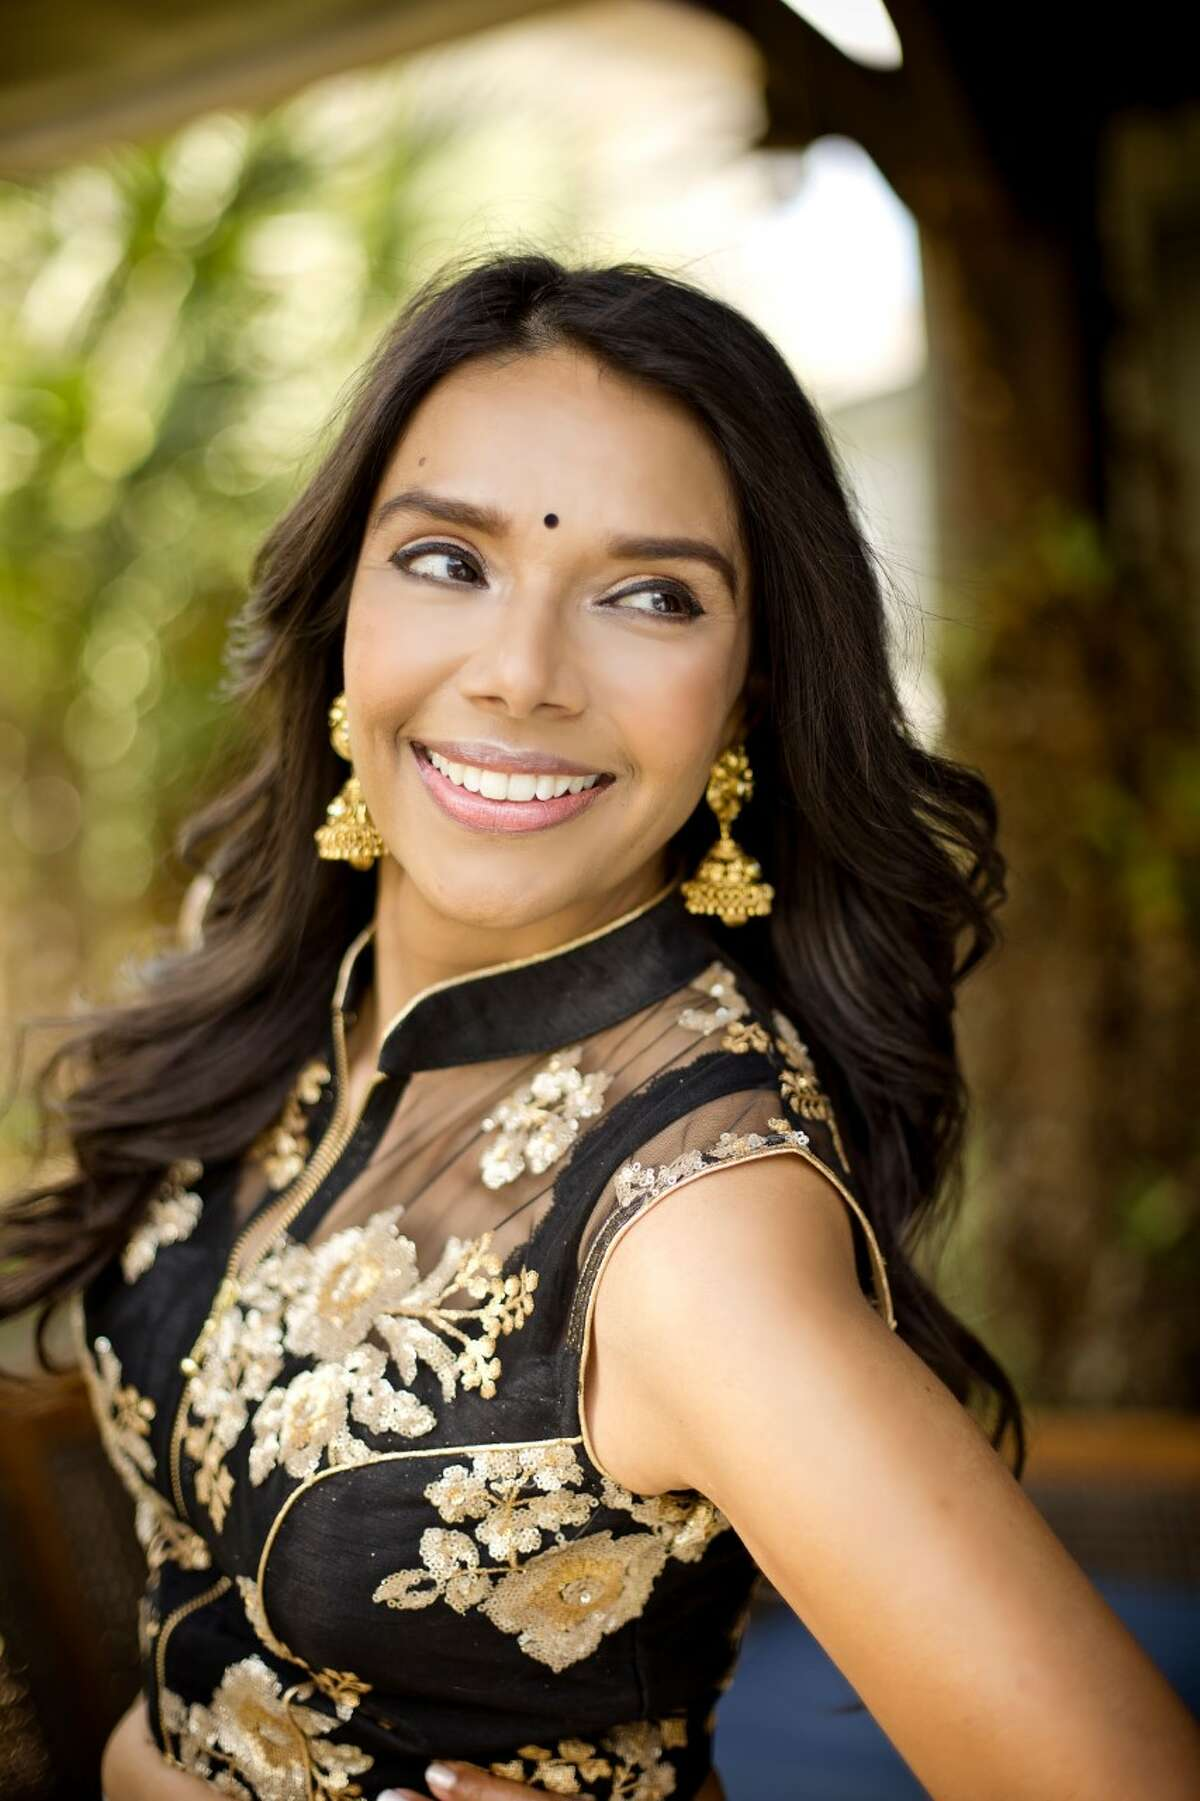 Priya Deva, a Canadian-born actress who has lived in San Antonio for 20 years, plays Uma Singh in the film debuting in the spotlight narrative category. The movie has the same SK Global Entertainment production team as